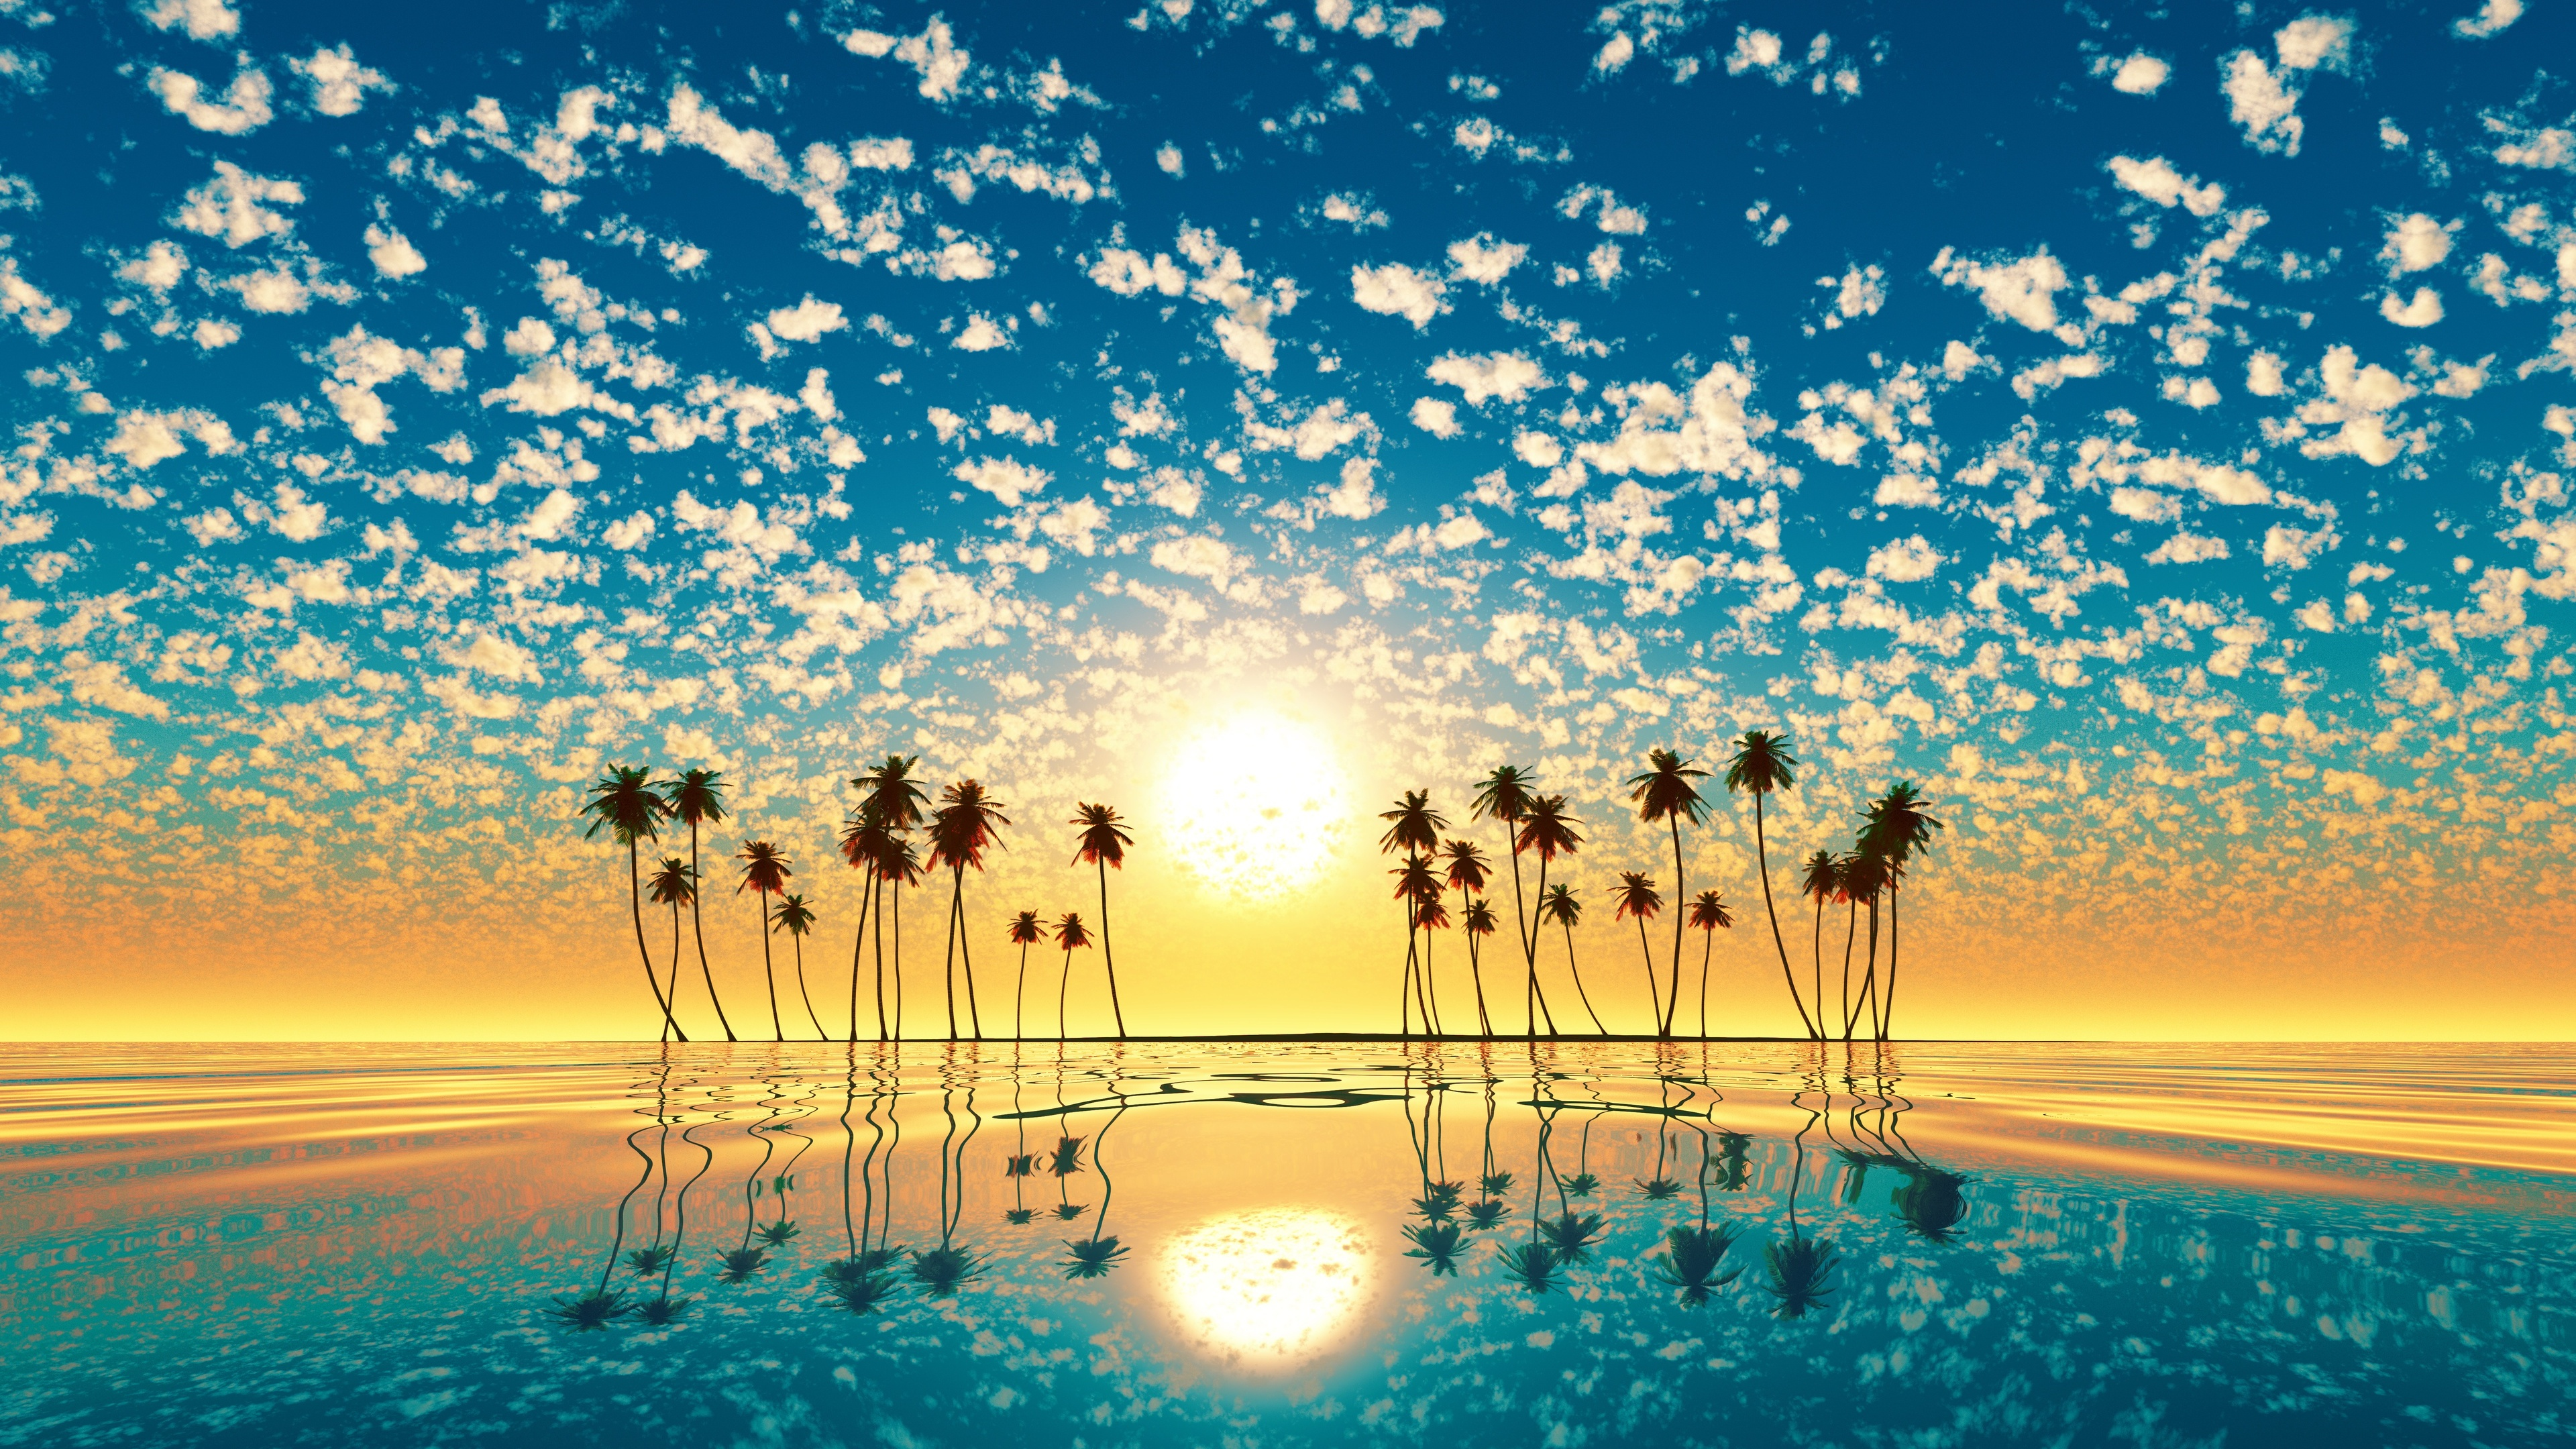 palm trees reflection sunset 4k 1540133021 - Palm Trees Reflection Sunset 4k - trees wallpapers, sunset wallpapers, palm wallpapers, nature wallpapers, hd-wallpapers, 4k-wallpapers